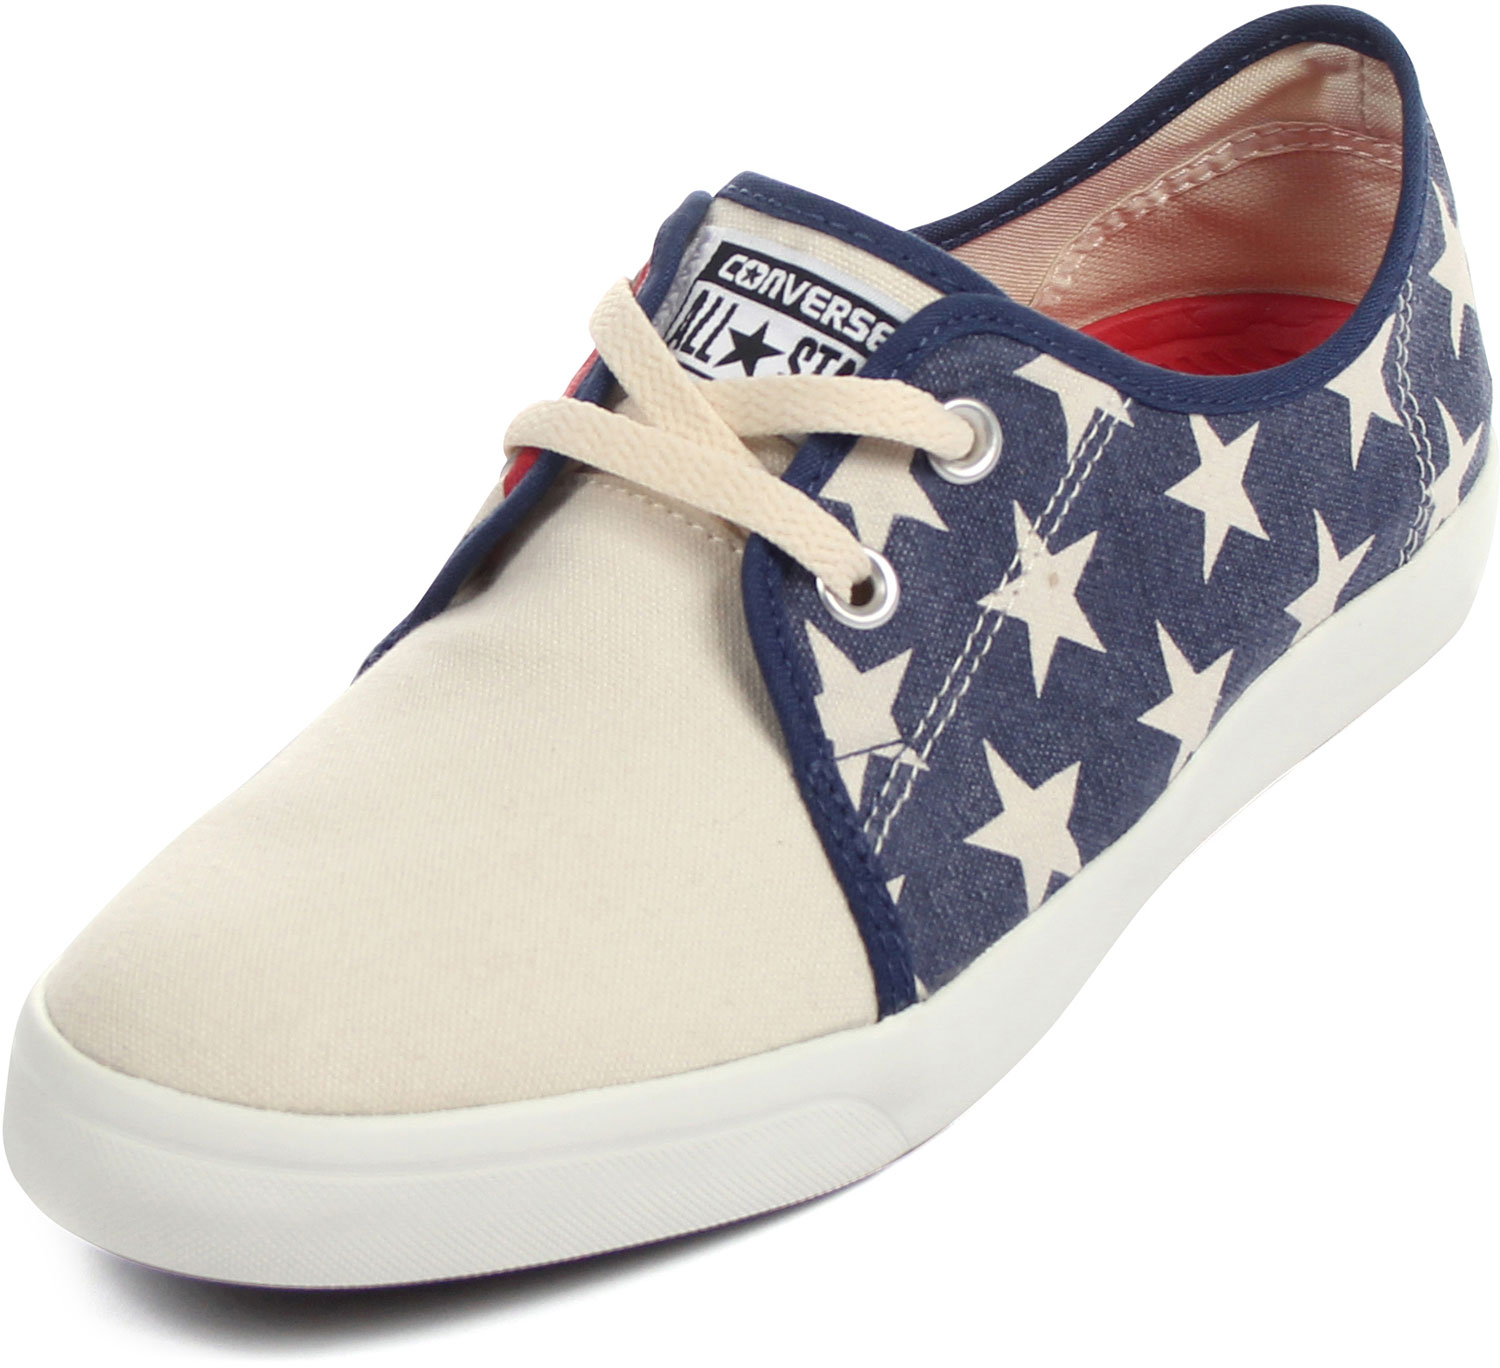 d5937a748a72 Converse - All Star Riff Low Shoes